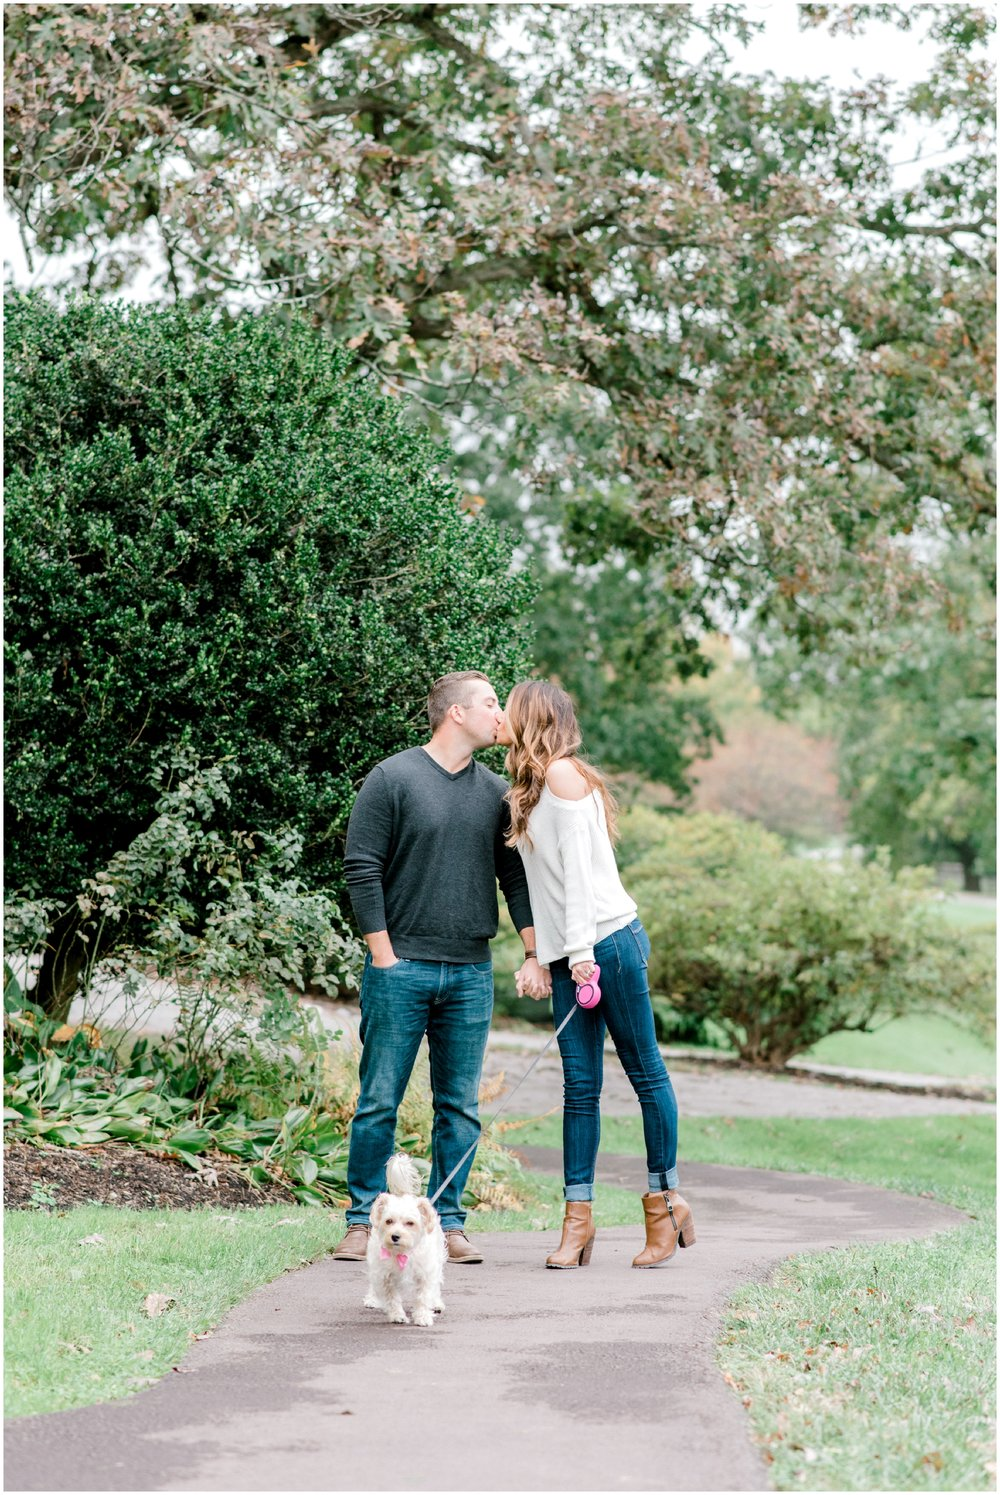 Fall Springton Manor Farm Engagement Session - Krista Brackin Photography_0015.jpg